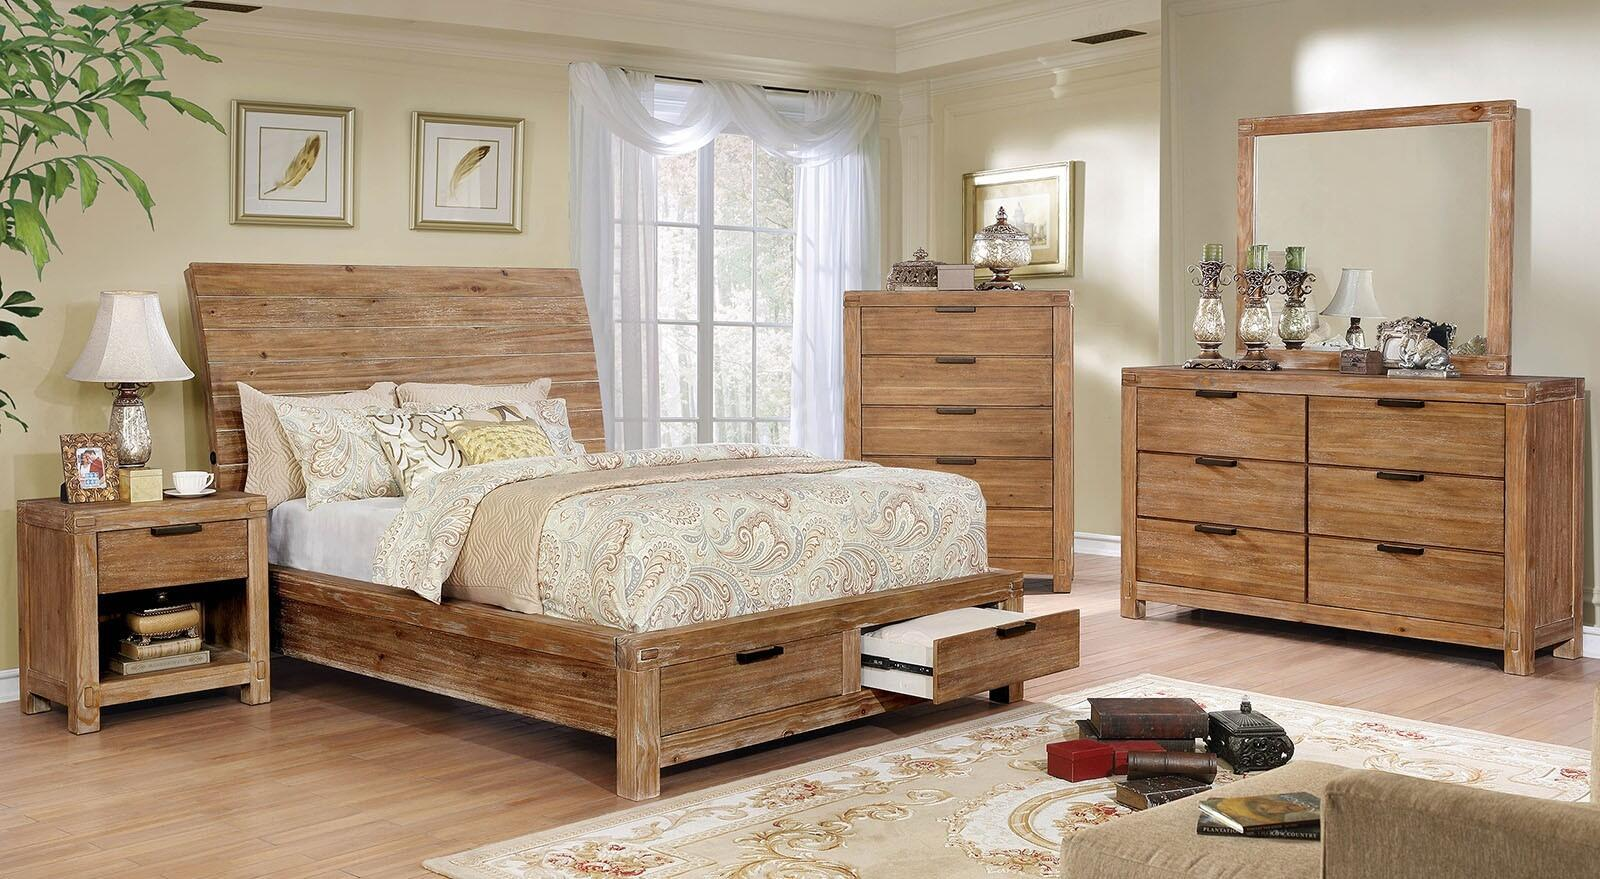 Furniture of America Dion 5 Piece California King Size Bedroom Set